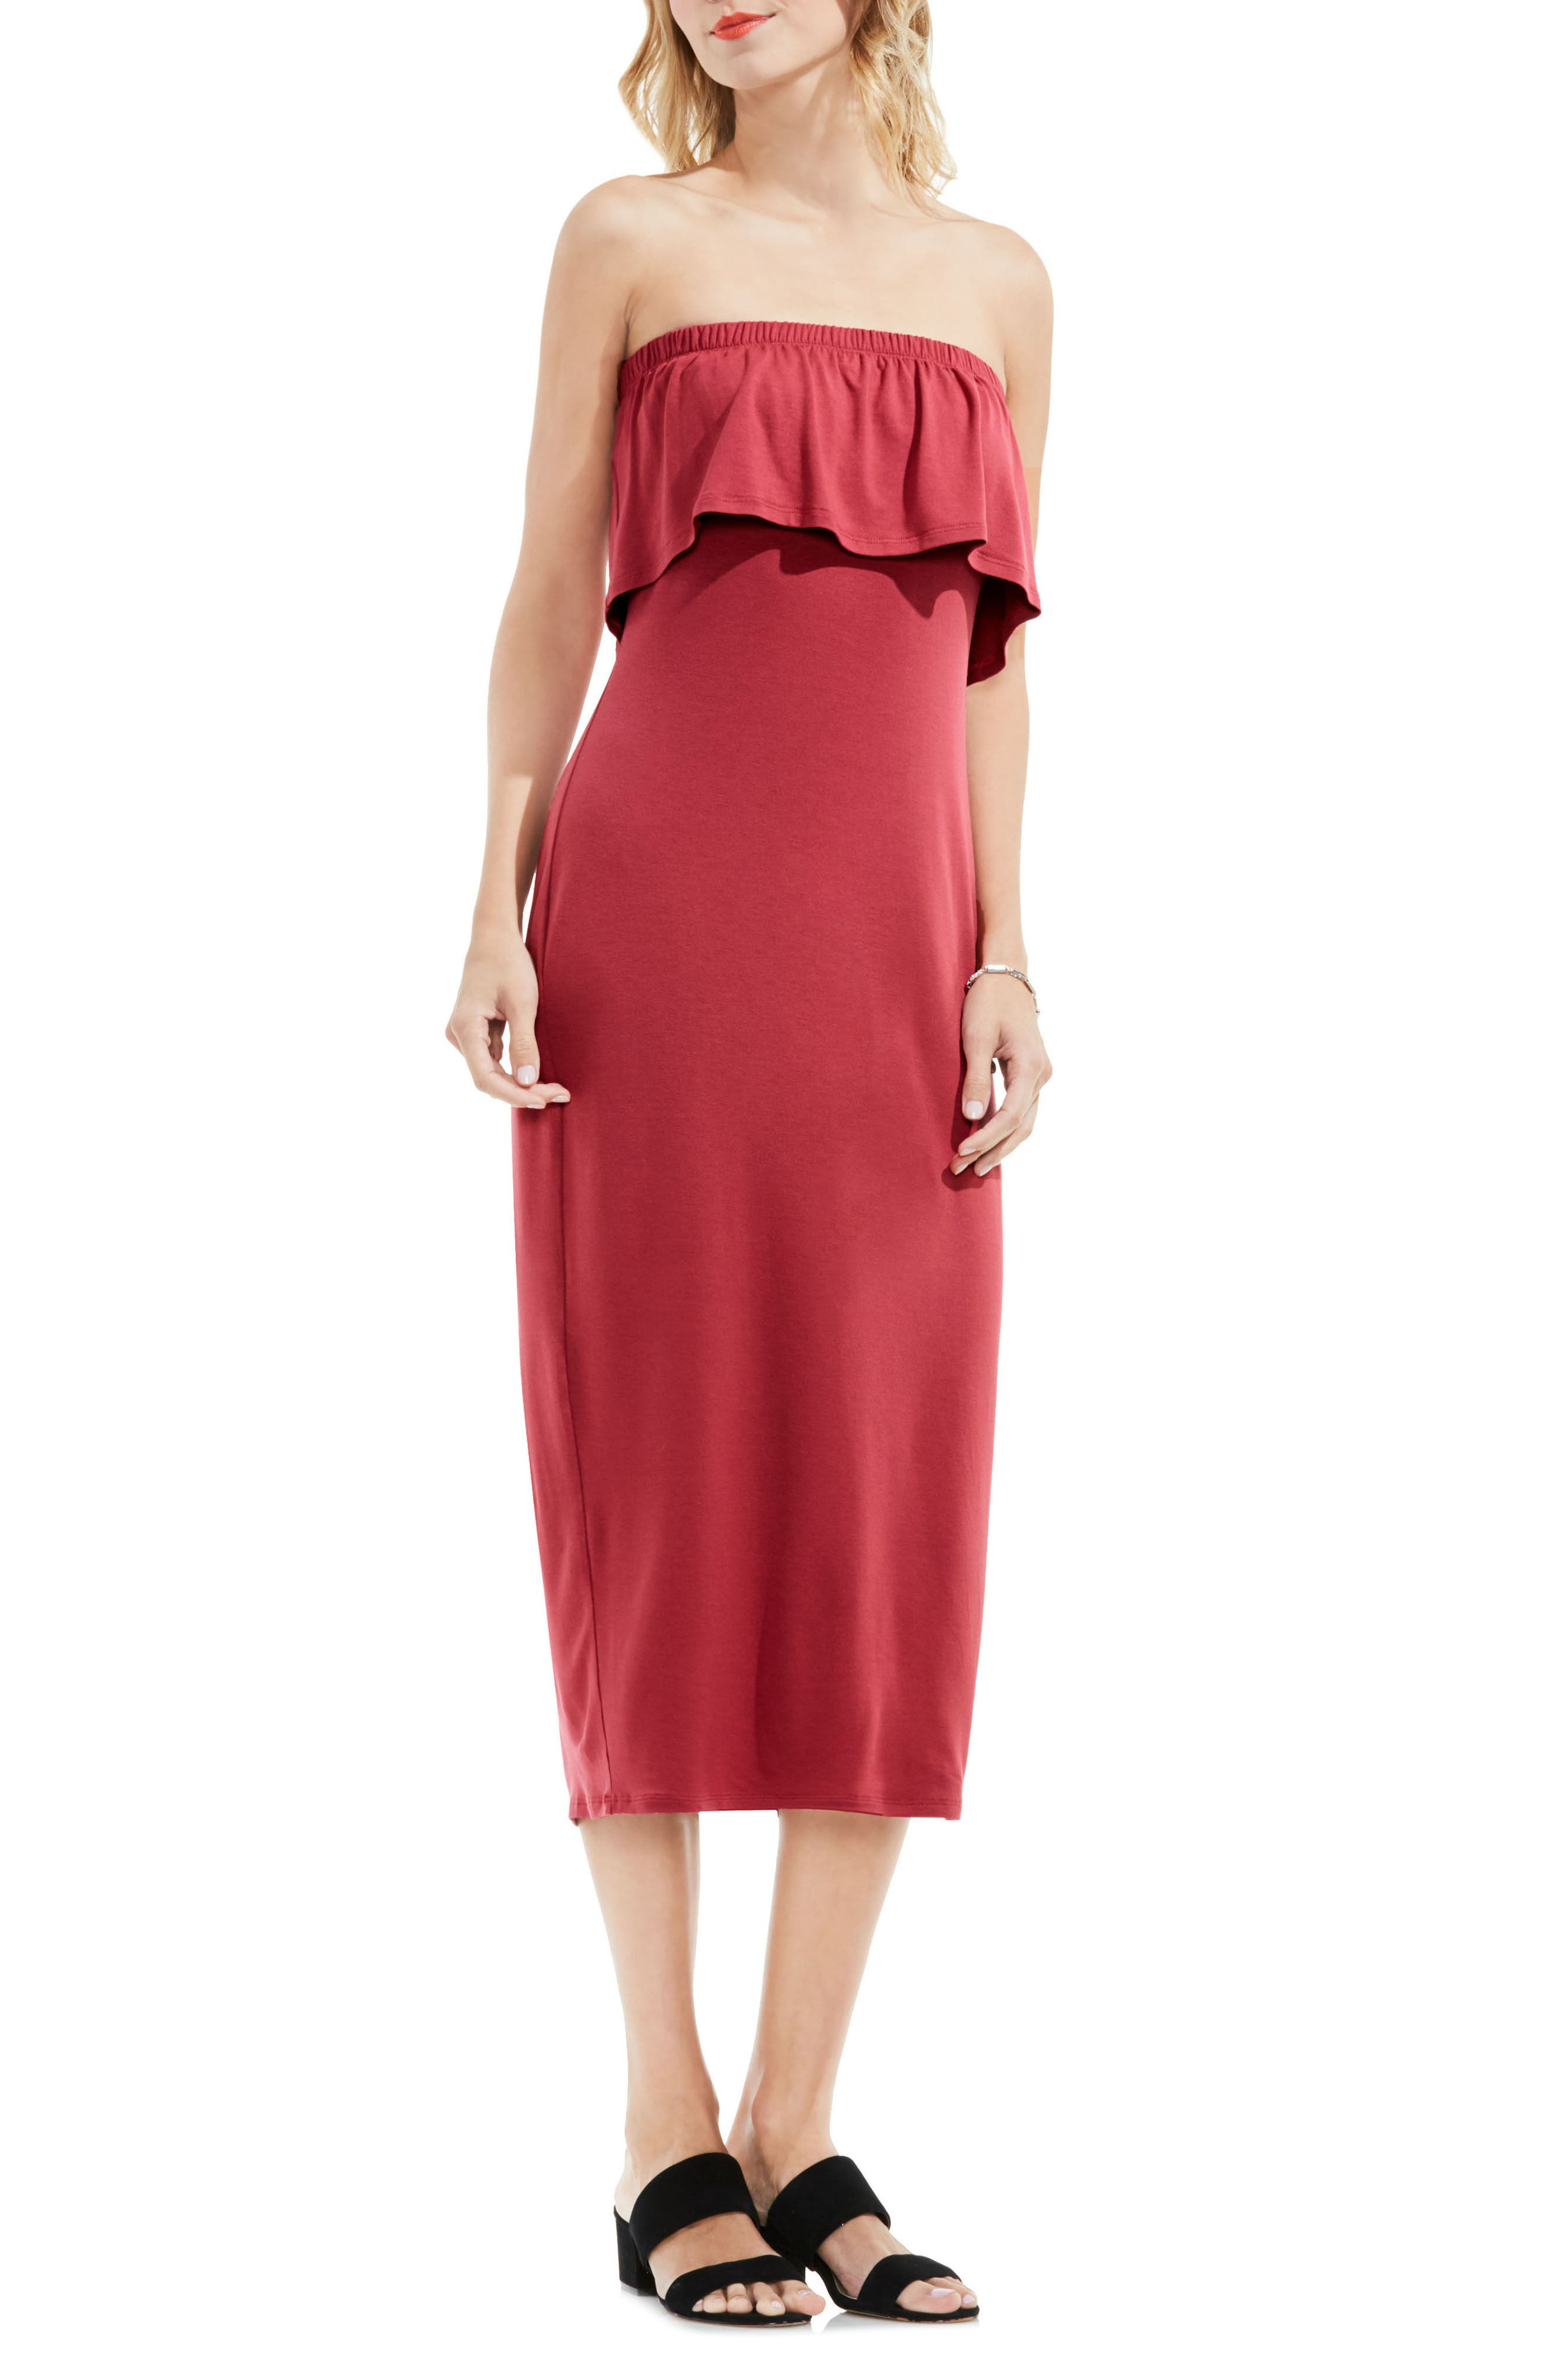 Vince Camuto Ruffle Off the Shoulder Midi Dress